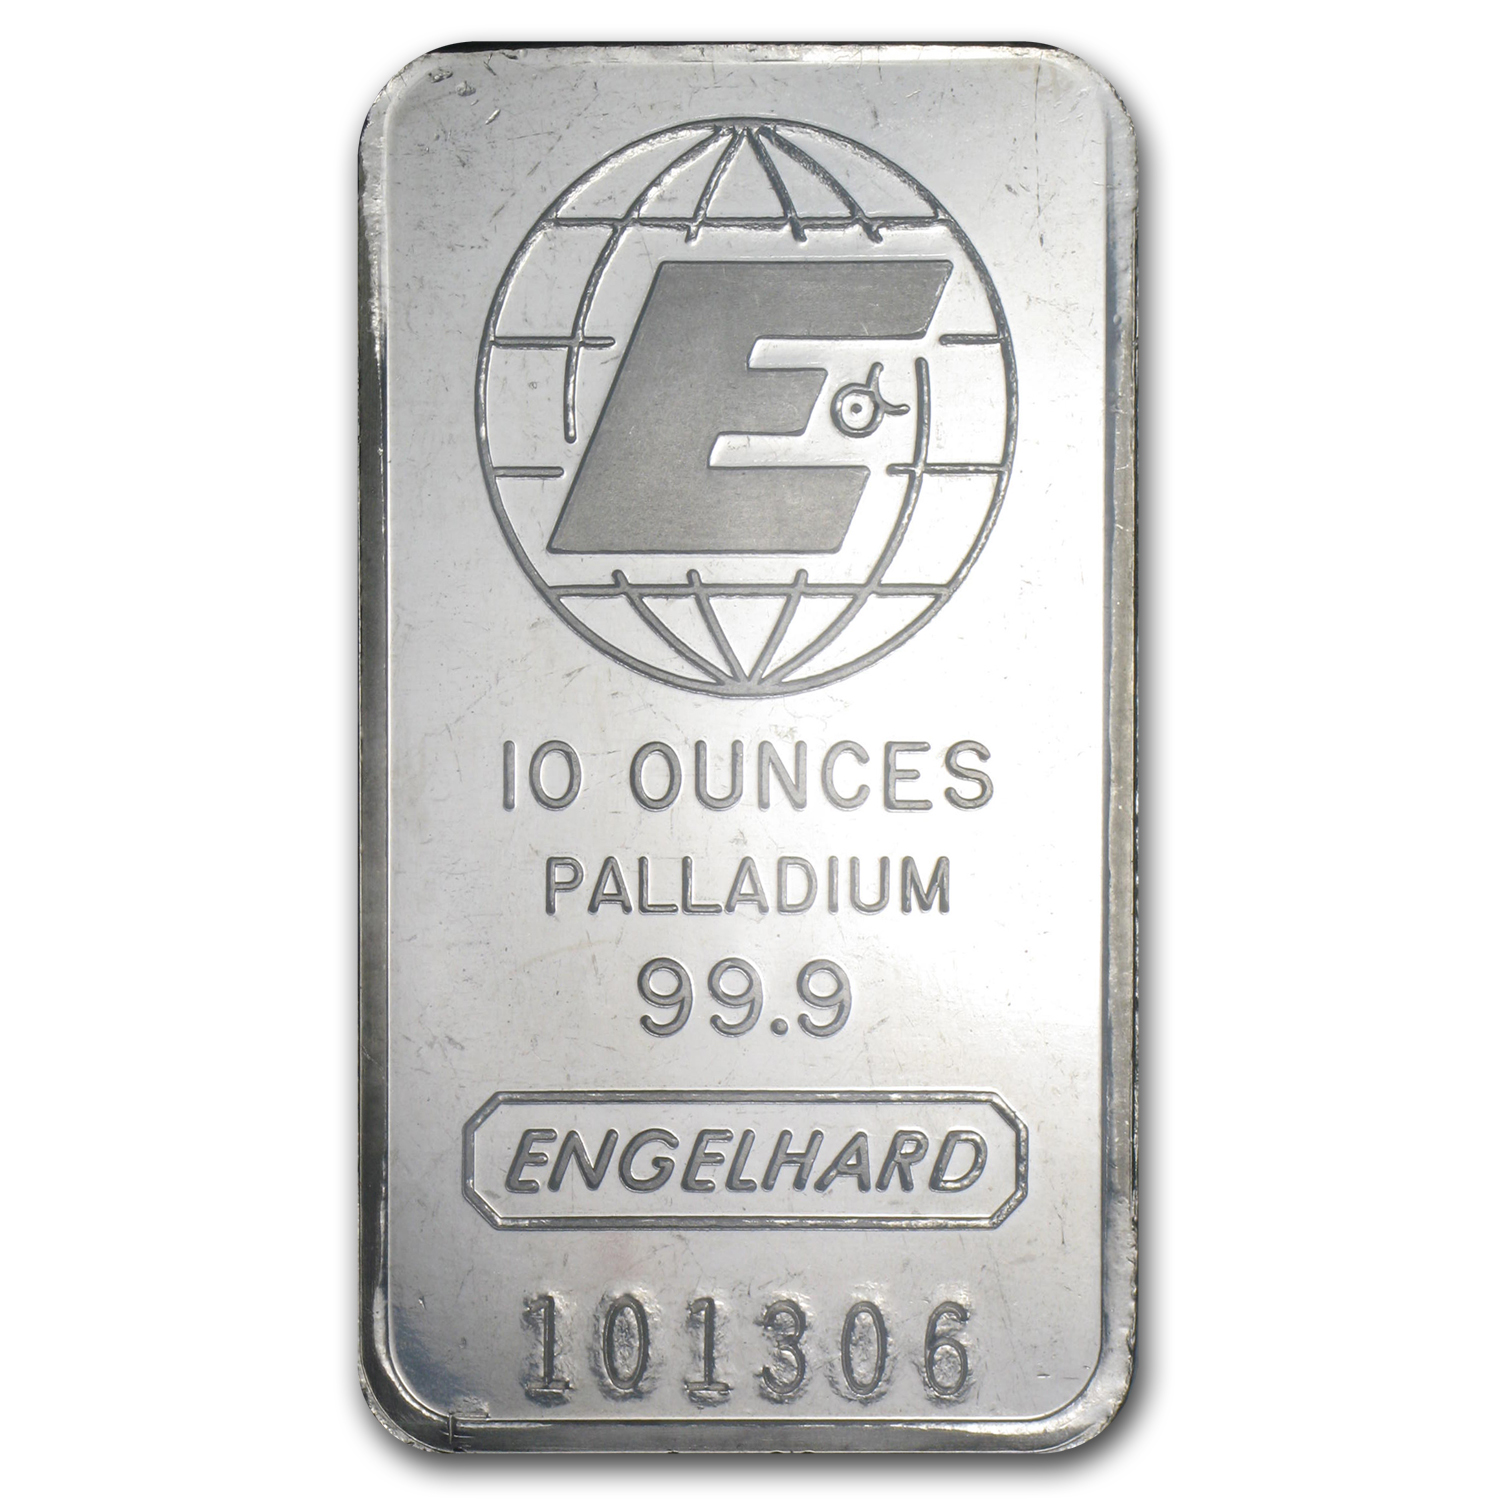 10 oz Engelhard Palladium Bar .999 Fine (No Assay)